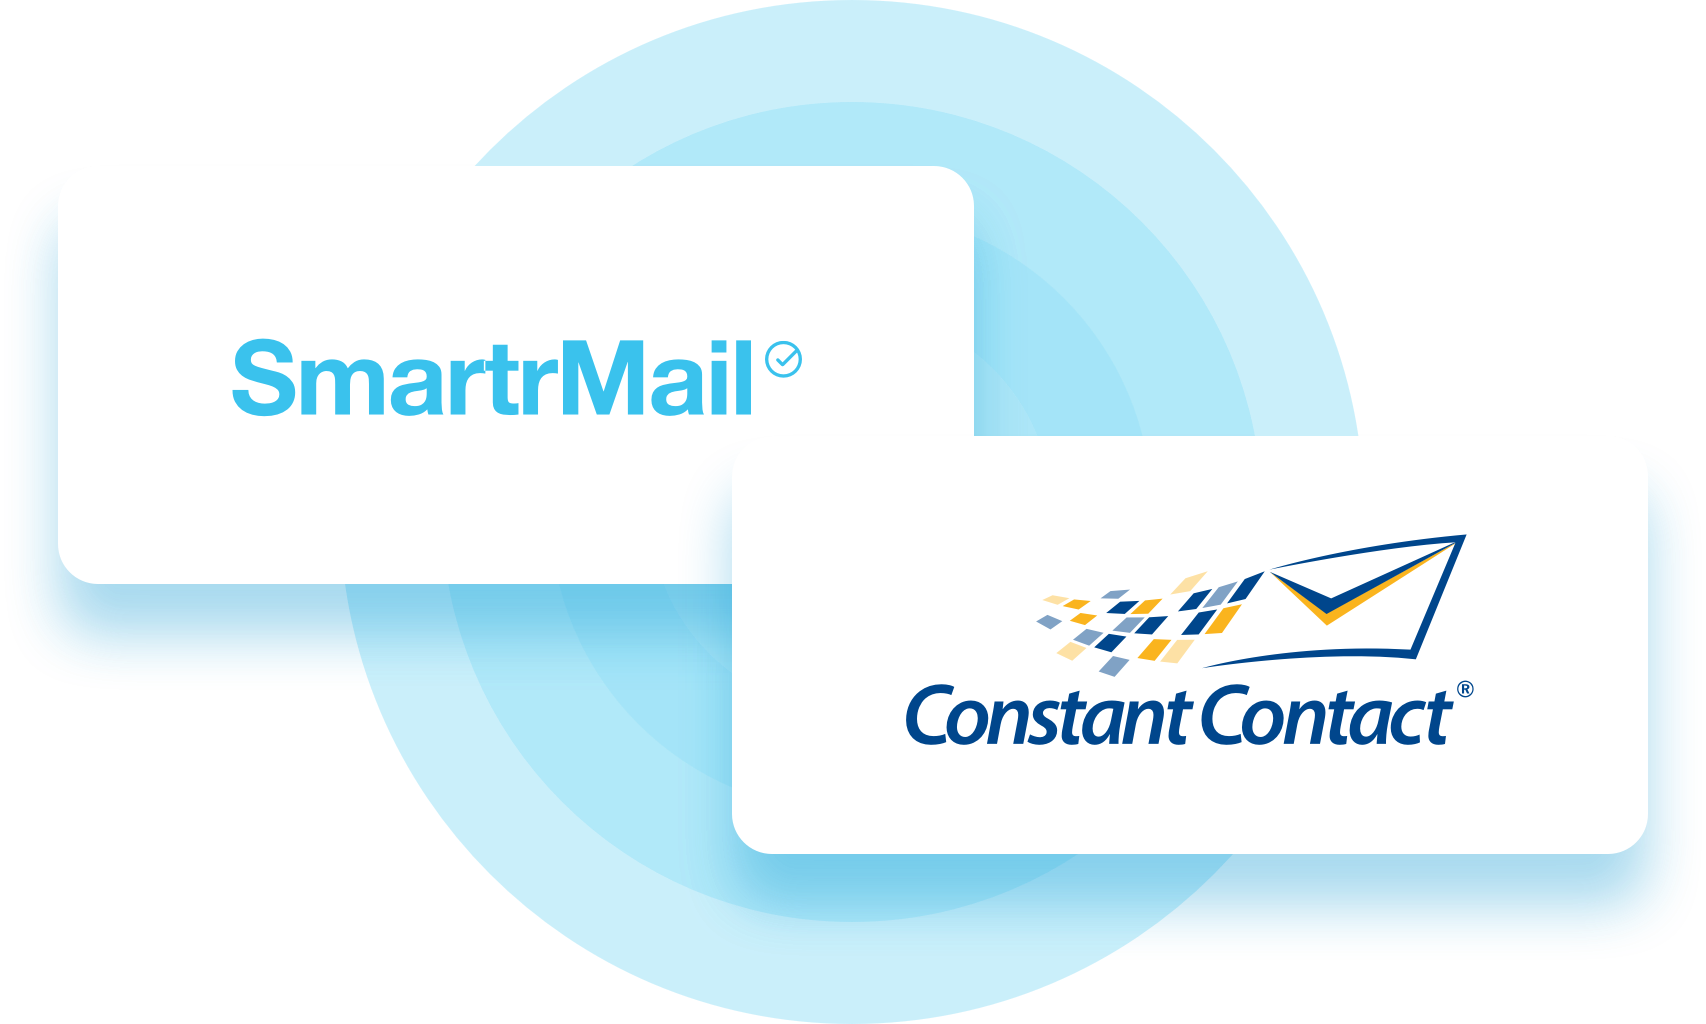 SmartrMail vs Constant Contact